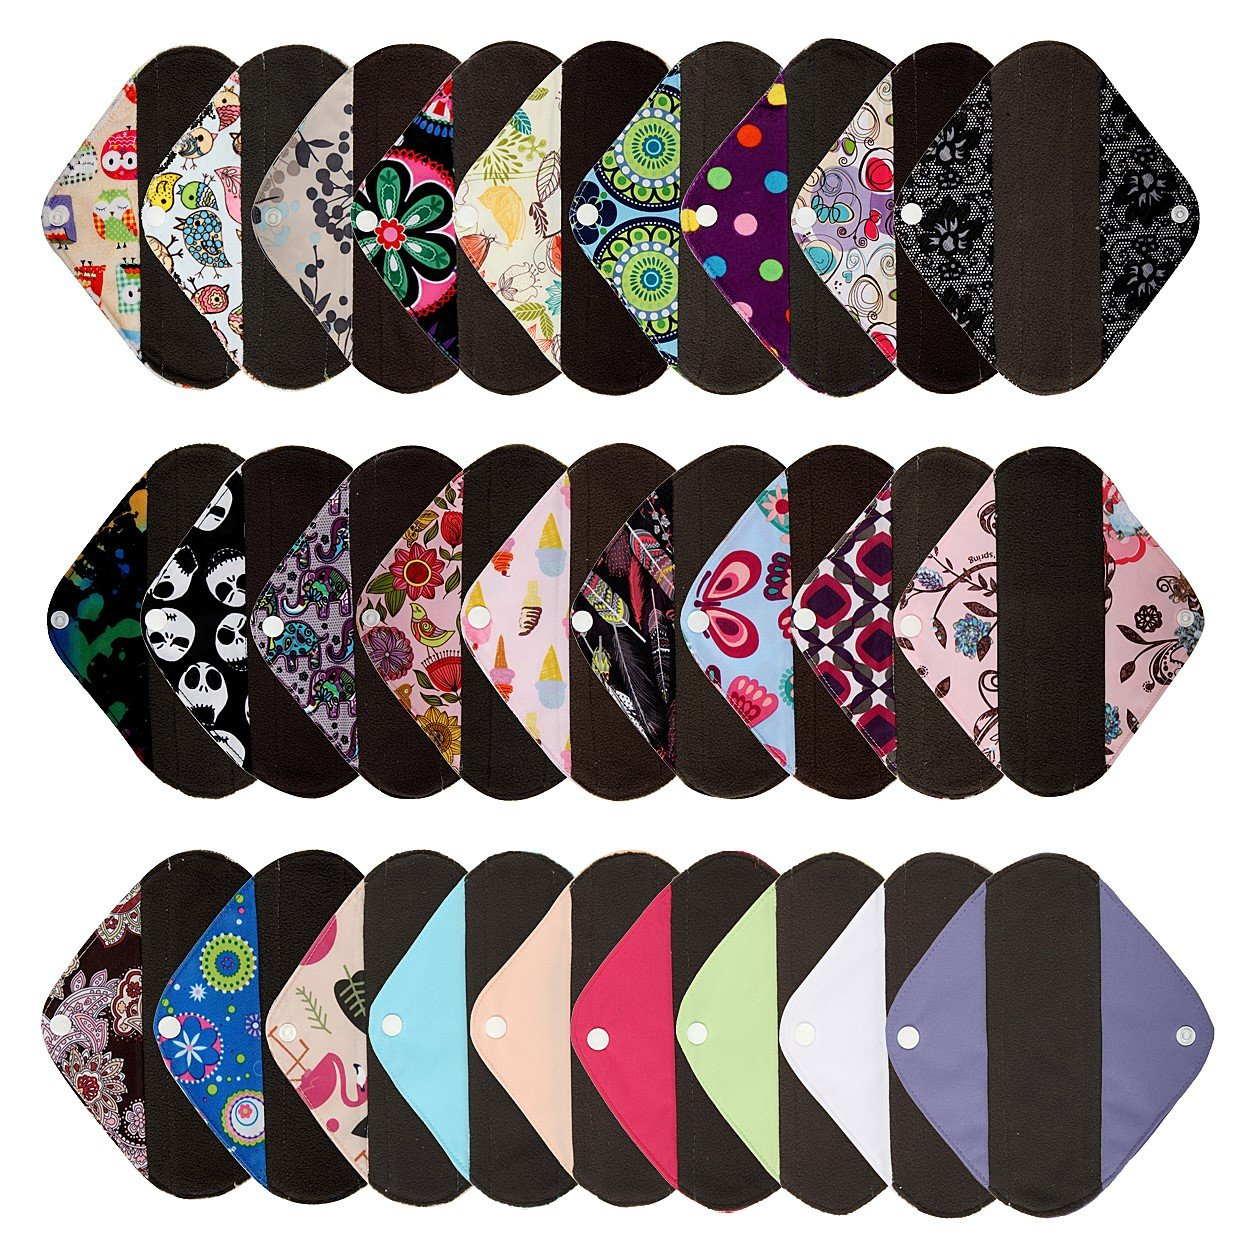 6 Pieces 8 Inch Charcoal Bamboo Mama Cloth/ Menstrual Pads/ Reusable Sanitary Pads / Panty Liners - You Choose 6 From 17 Designs and Send the Message to Me Hibaby